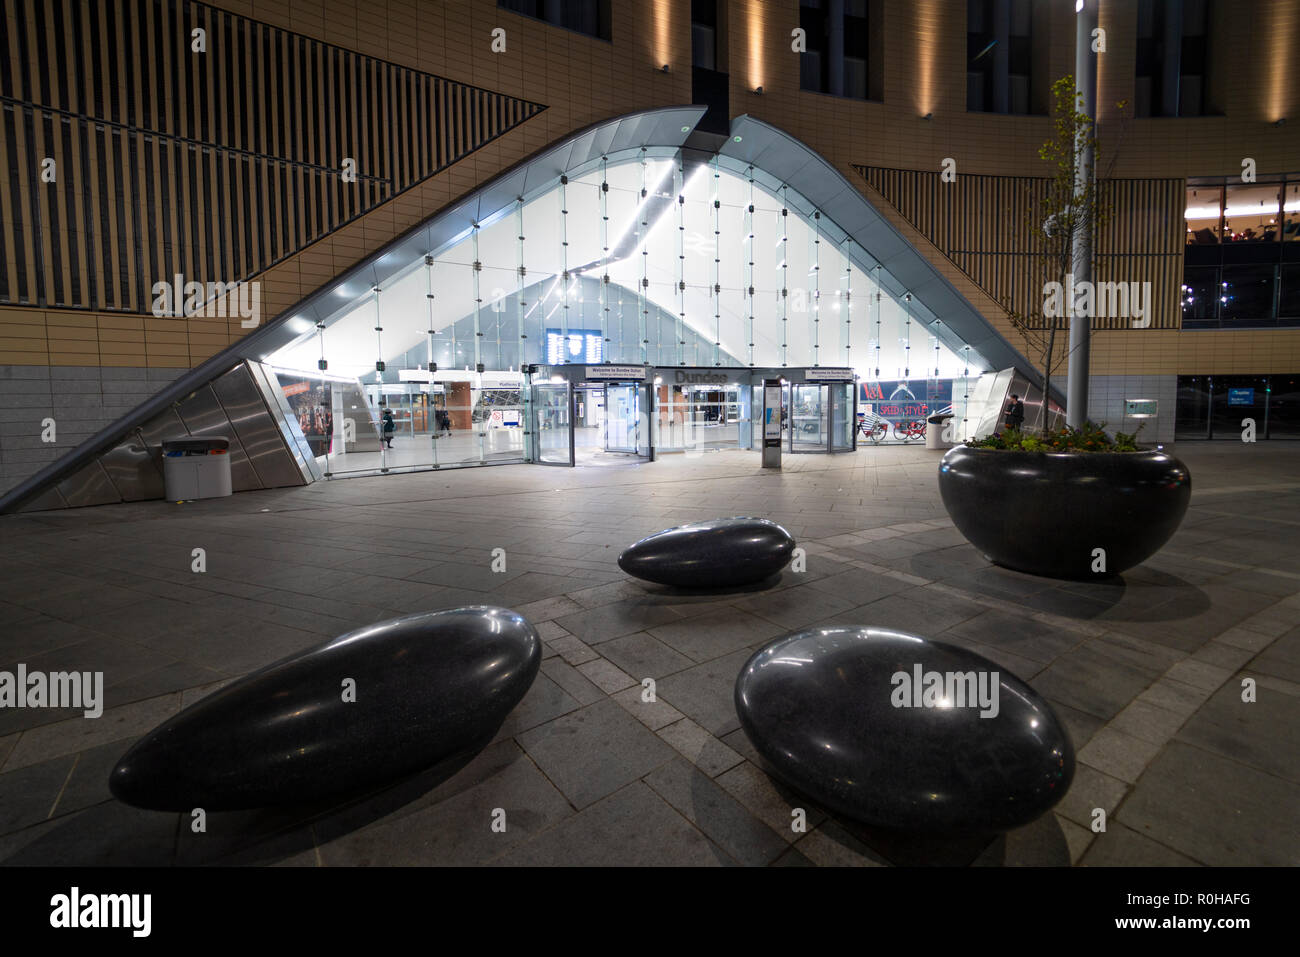 Night view of exterior of Dundee railway station, in Tayside, Scotland, UK - Stock Image